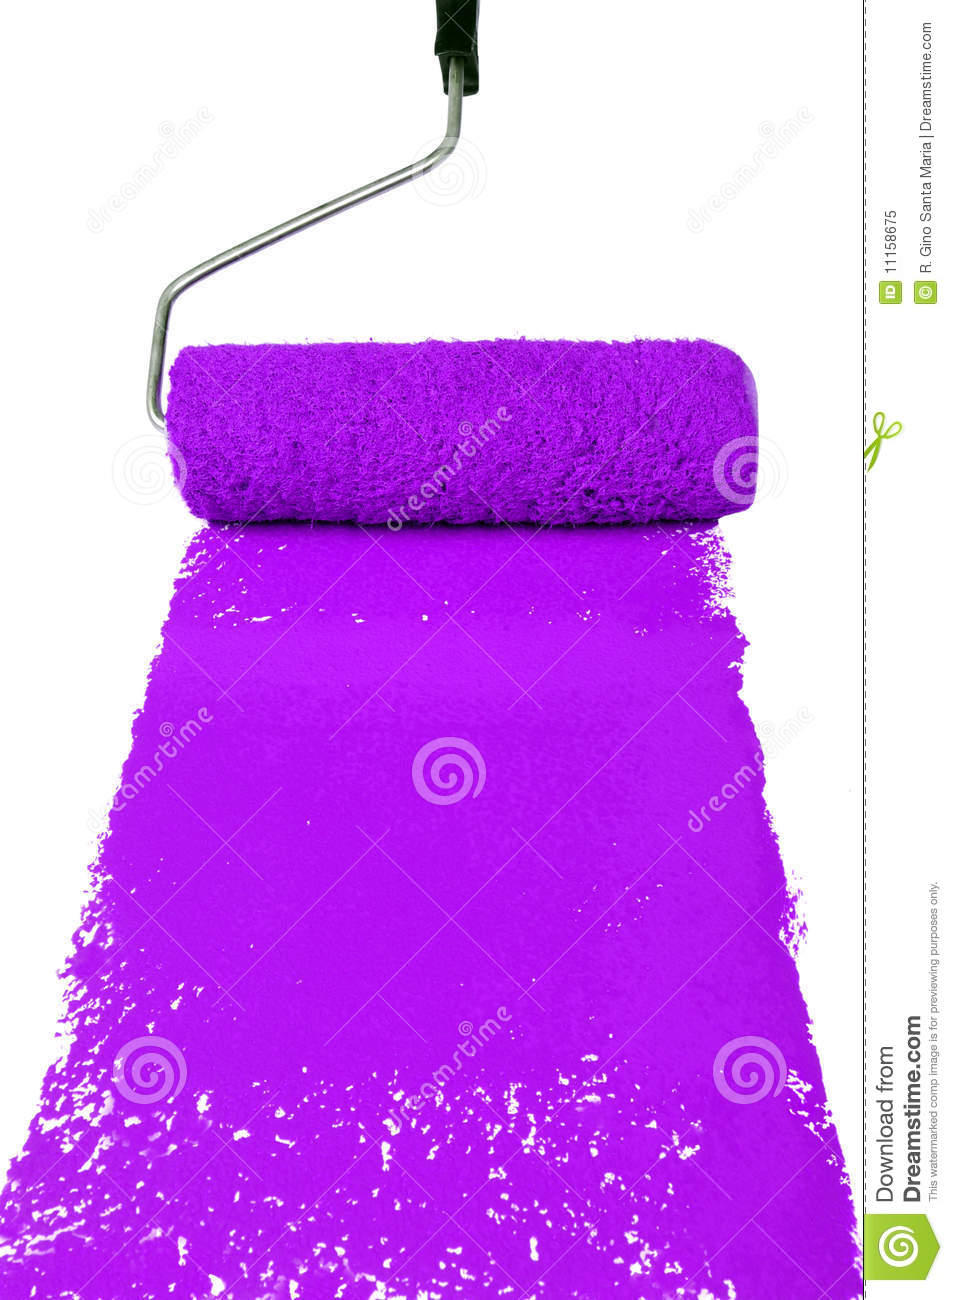 roller with purple paint royalty free stock photo image 11158675. Black Bedroom Furniture Sets. Home Design Ideas